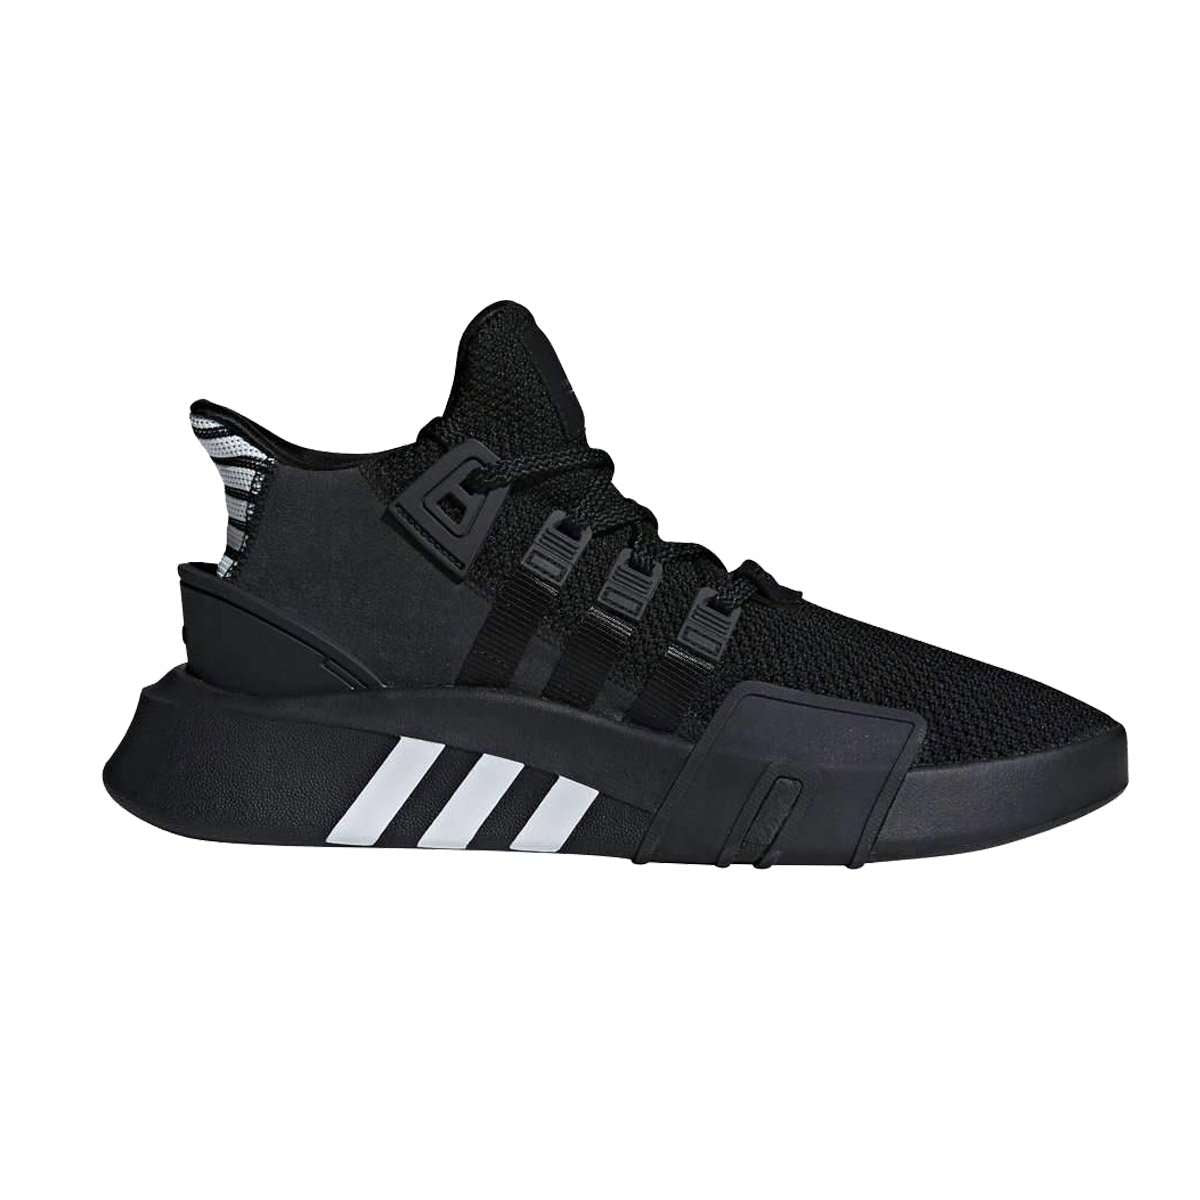 Adidas Eqt Adv Men S Basketball Shoes League Outfitters